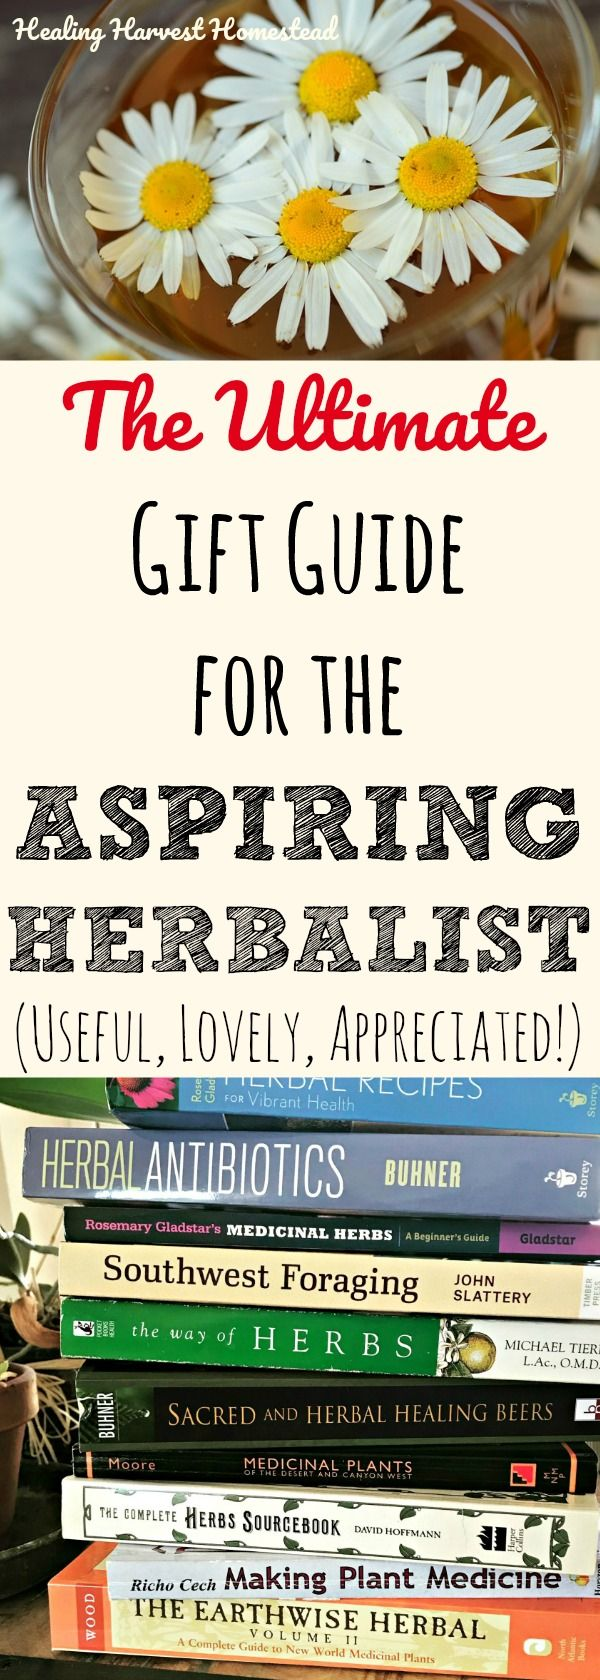 Do you or a friend wish to become an herbalist? Or maybe they (or you) already are? Are you wondering what to get that person as a gift? Here are my best ideas for gifts for the person who is or wants to be an herbalist. Herbal education, courses, books, supplies....it's all here in this gift guide for the aspiring herbalist!